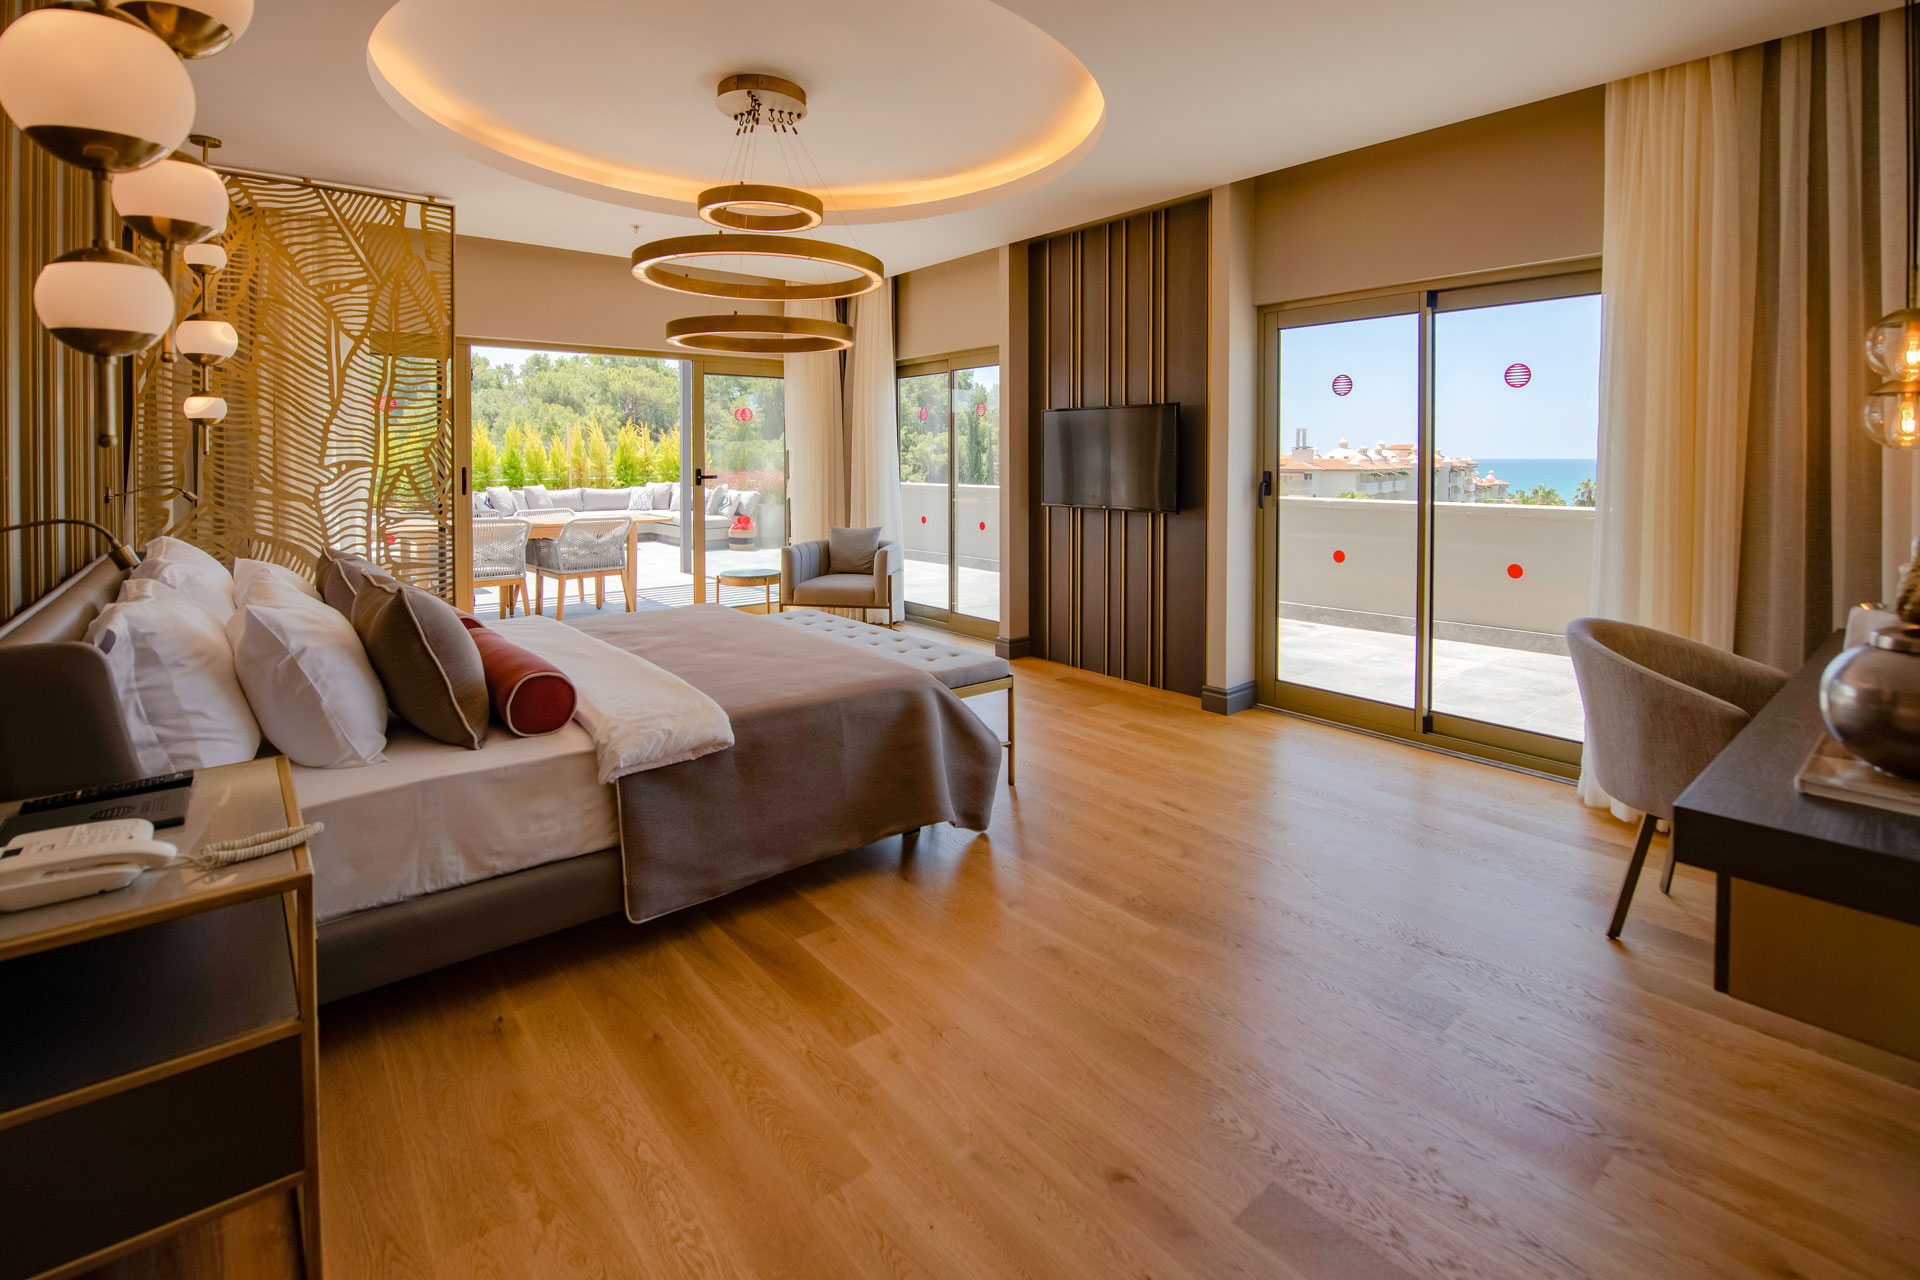 /images/barut-hemera/rooms/patara-suit/patara_1.jpg